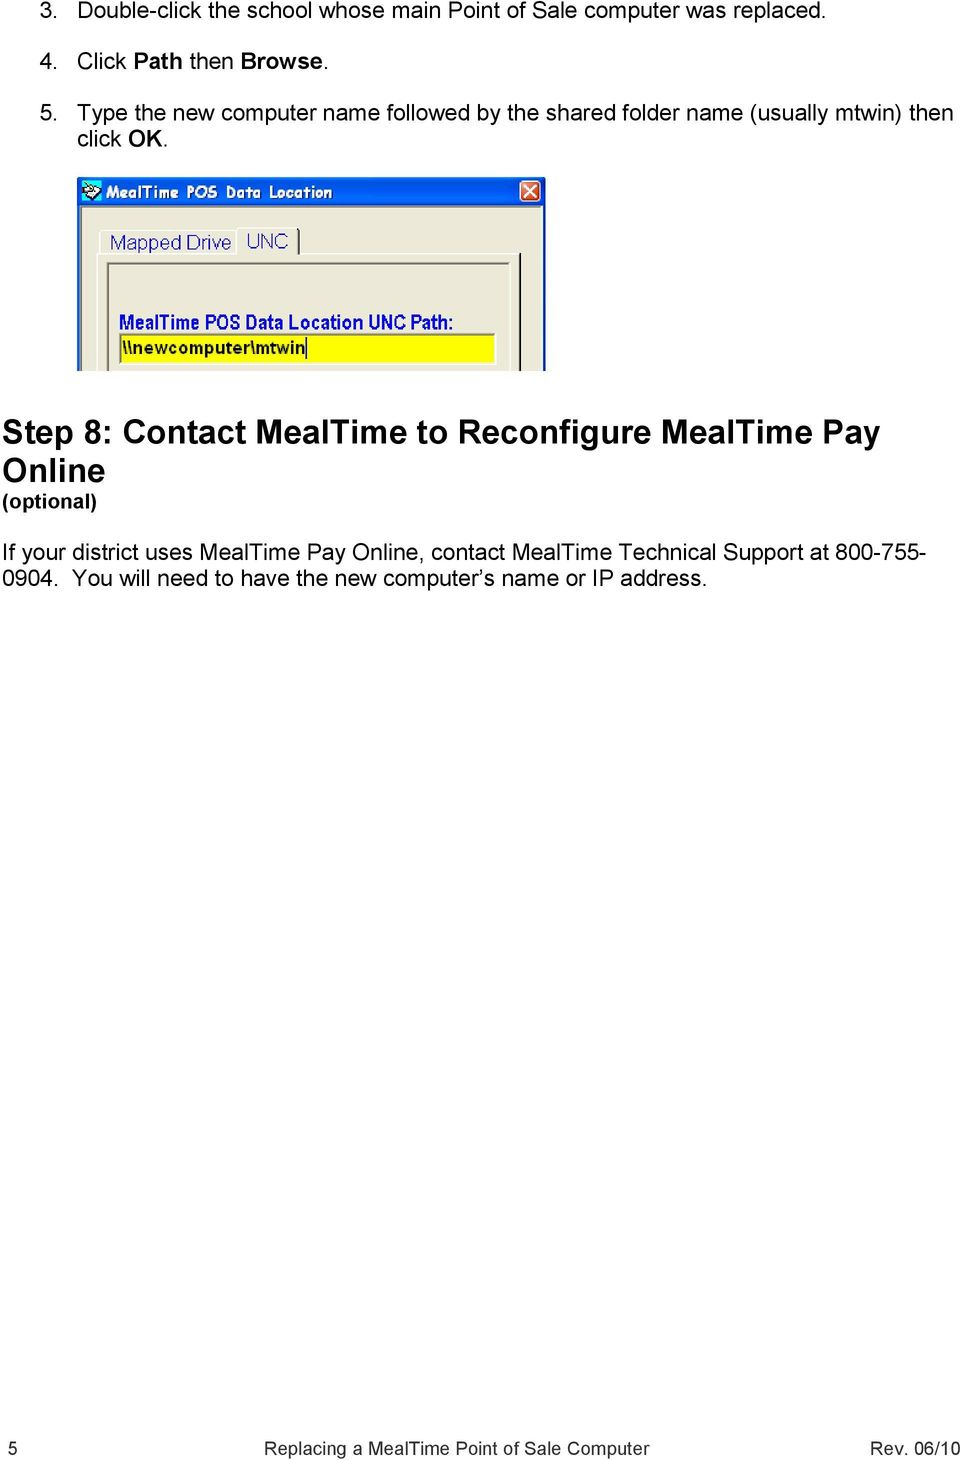 Step 8: Contact MealTime to Reconfigure MealTime Pay Online If your district uses MealTime Pay Online, contact